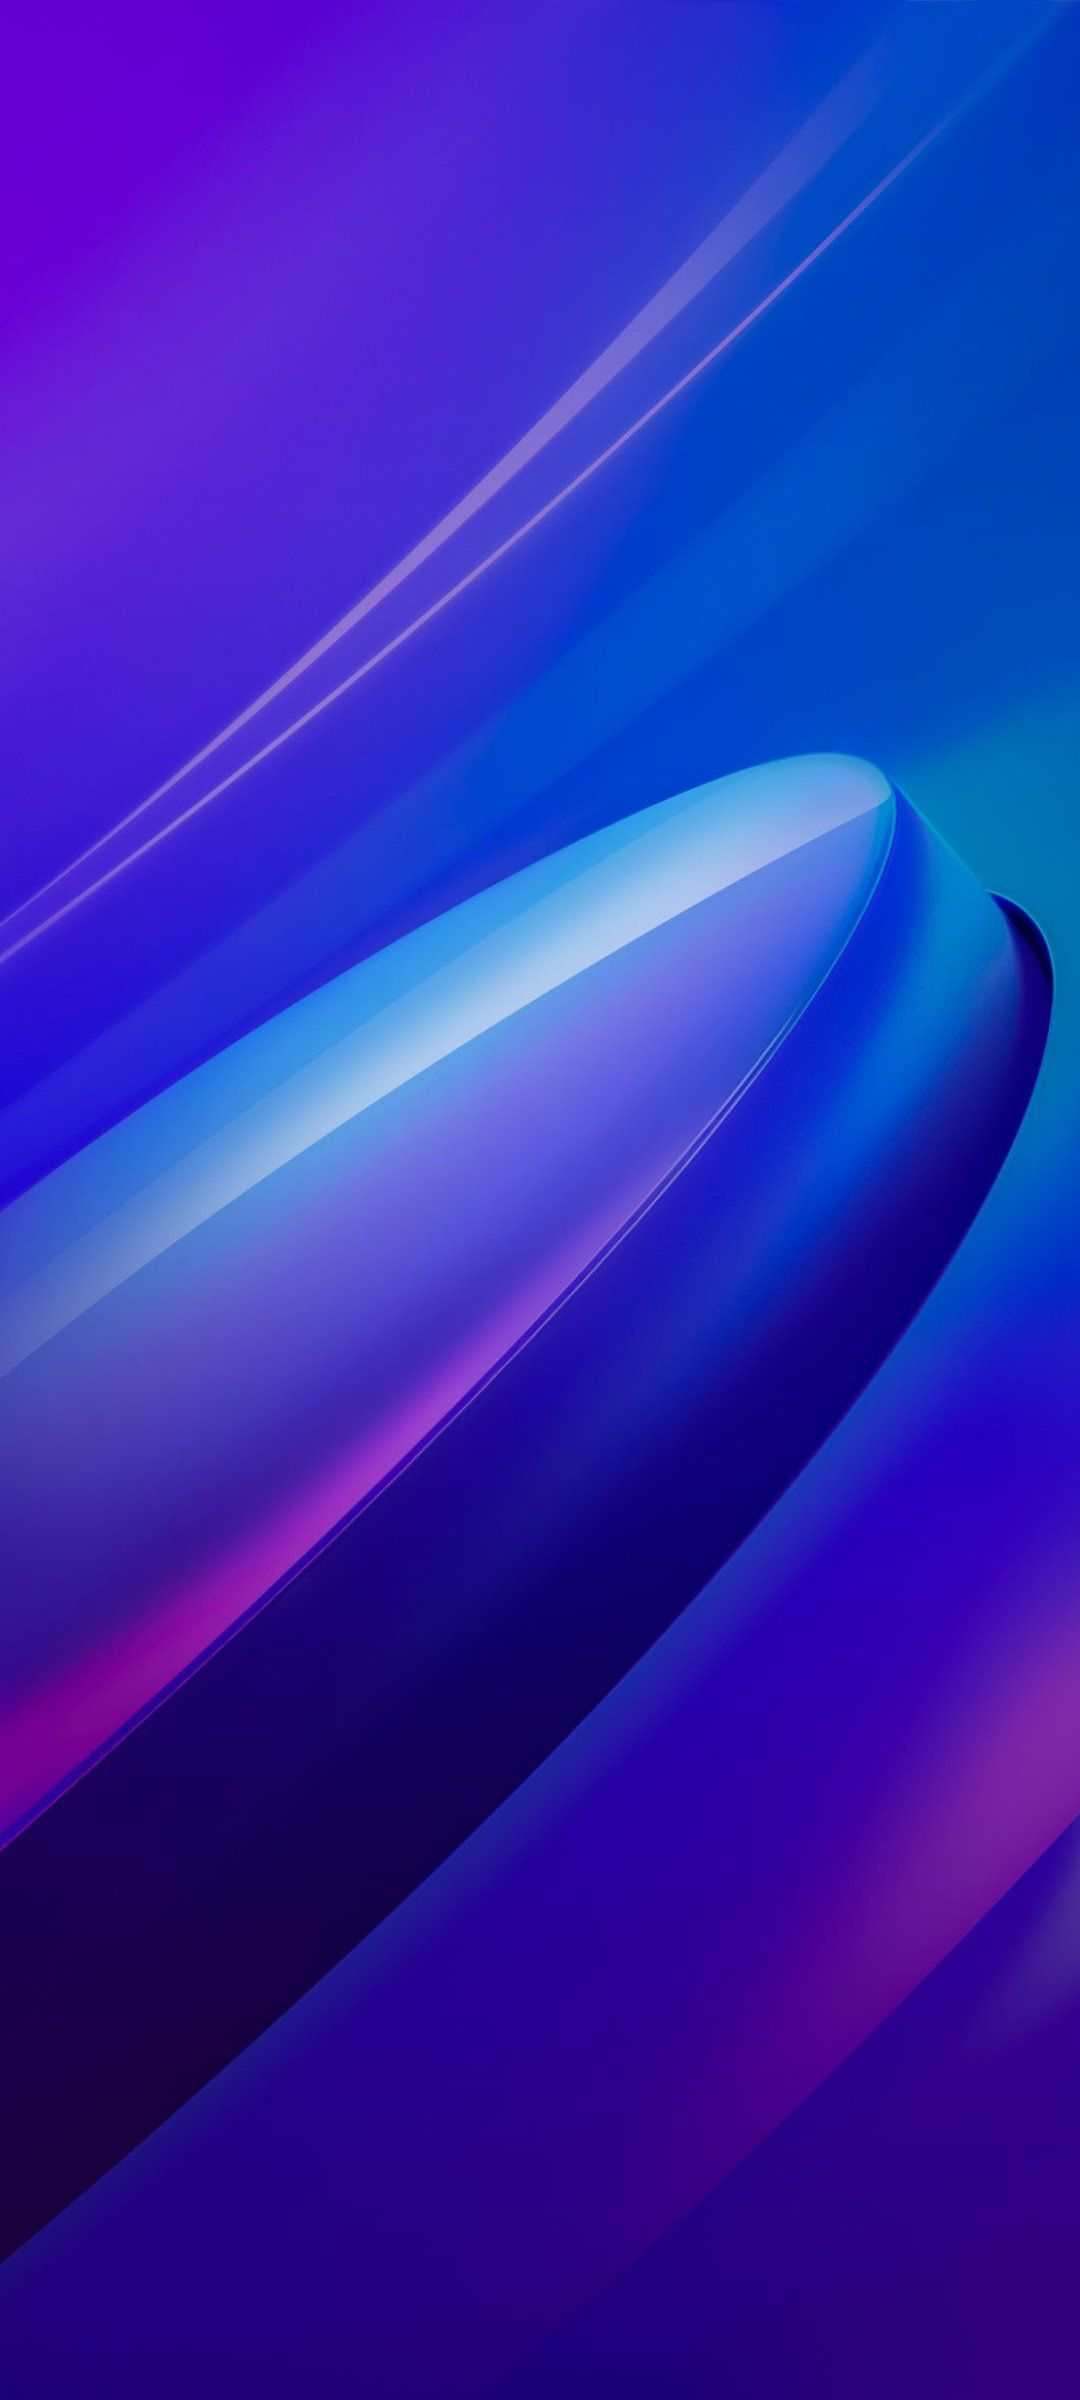 Wallpapers Samsung Galaxy A70 Fond D Ecran Telephone Hd Wallpaper Android Fond D Ecran Abstrait